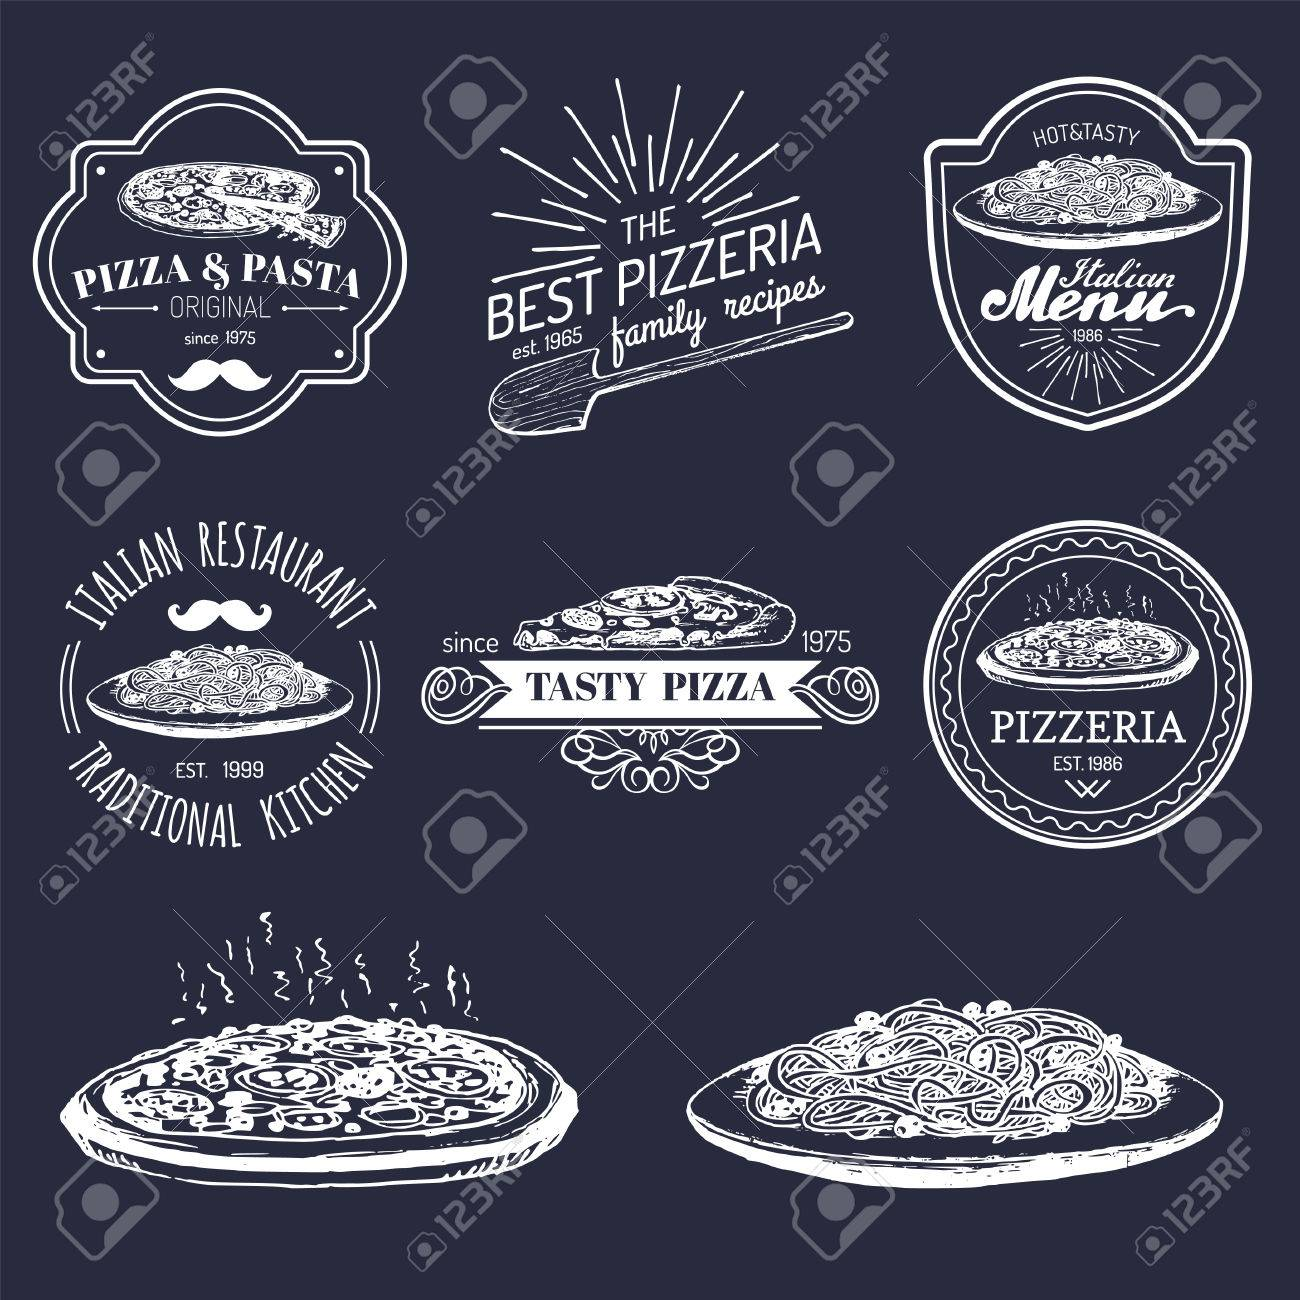 Vector Vintage Hipster Italian Food Logos Modern Pasta And Pizza